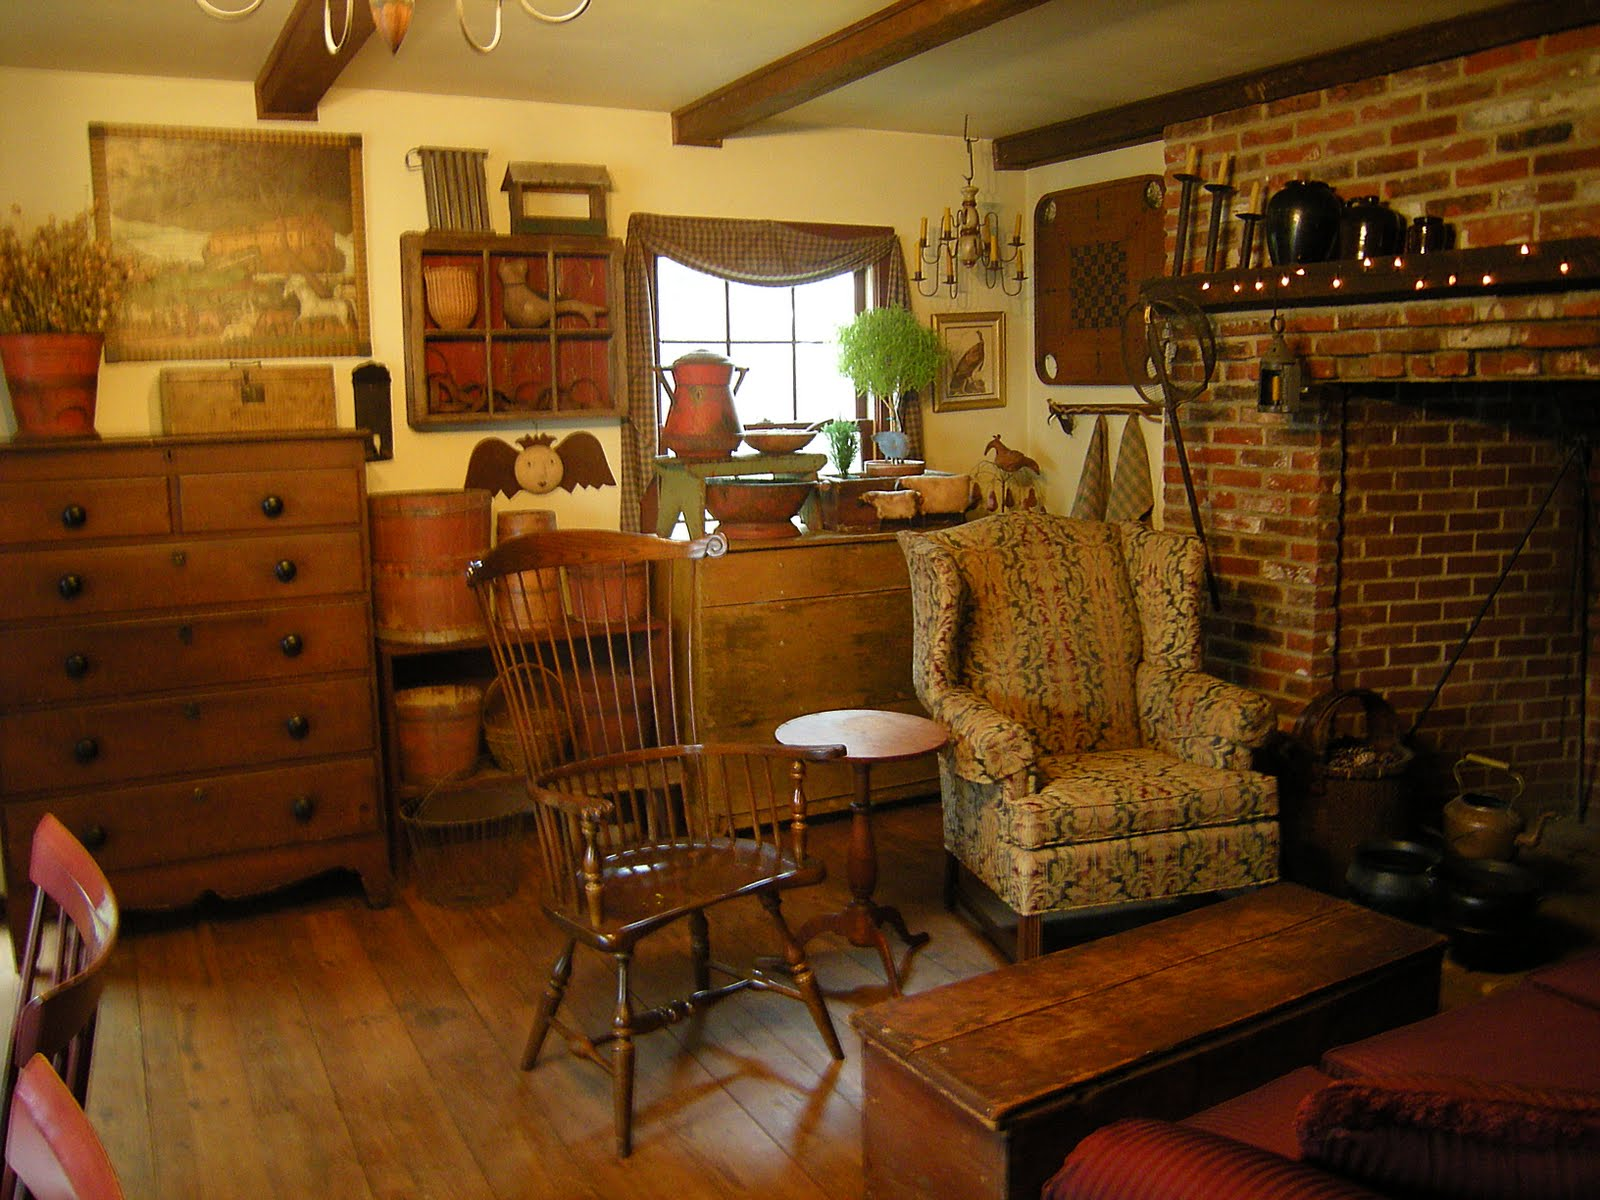 Primitive country decor wholesale - Country decorating ideas for living rooms ...